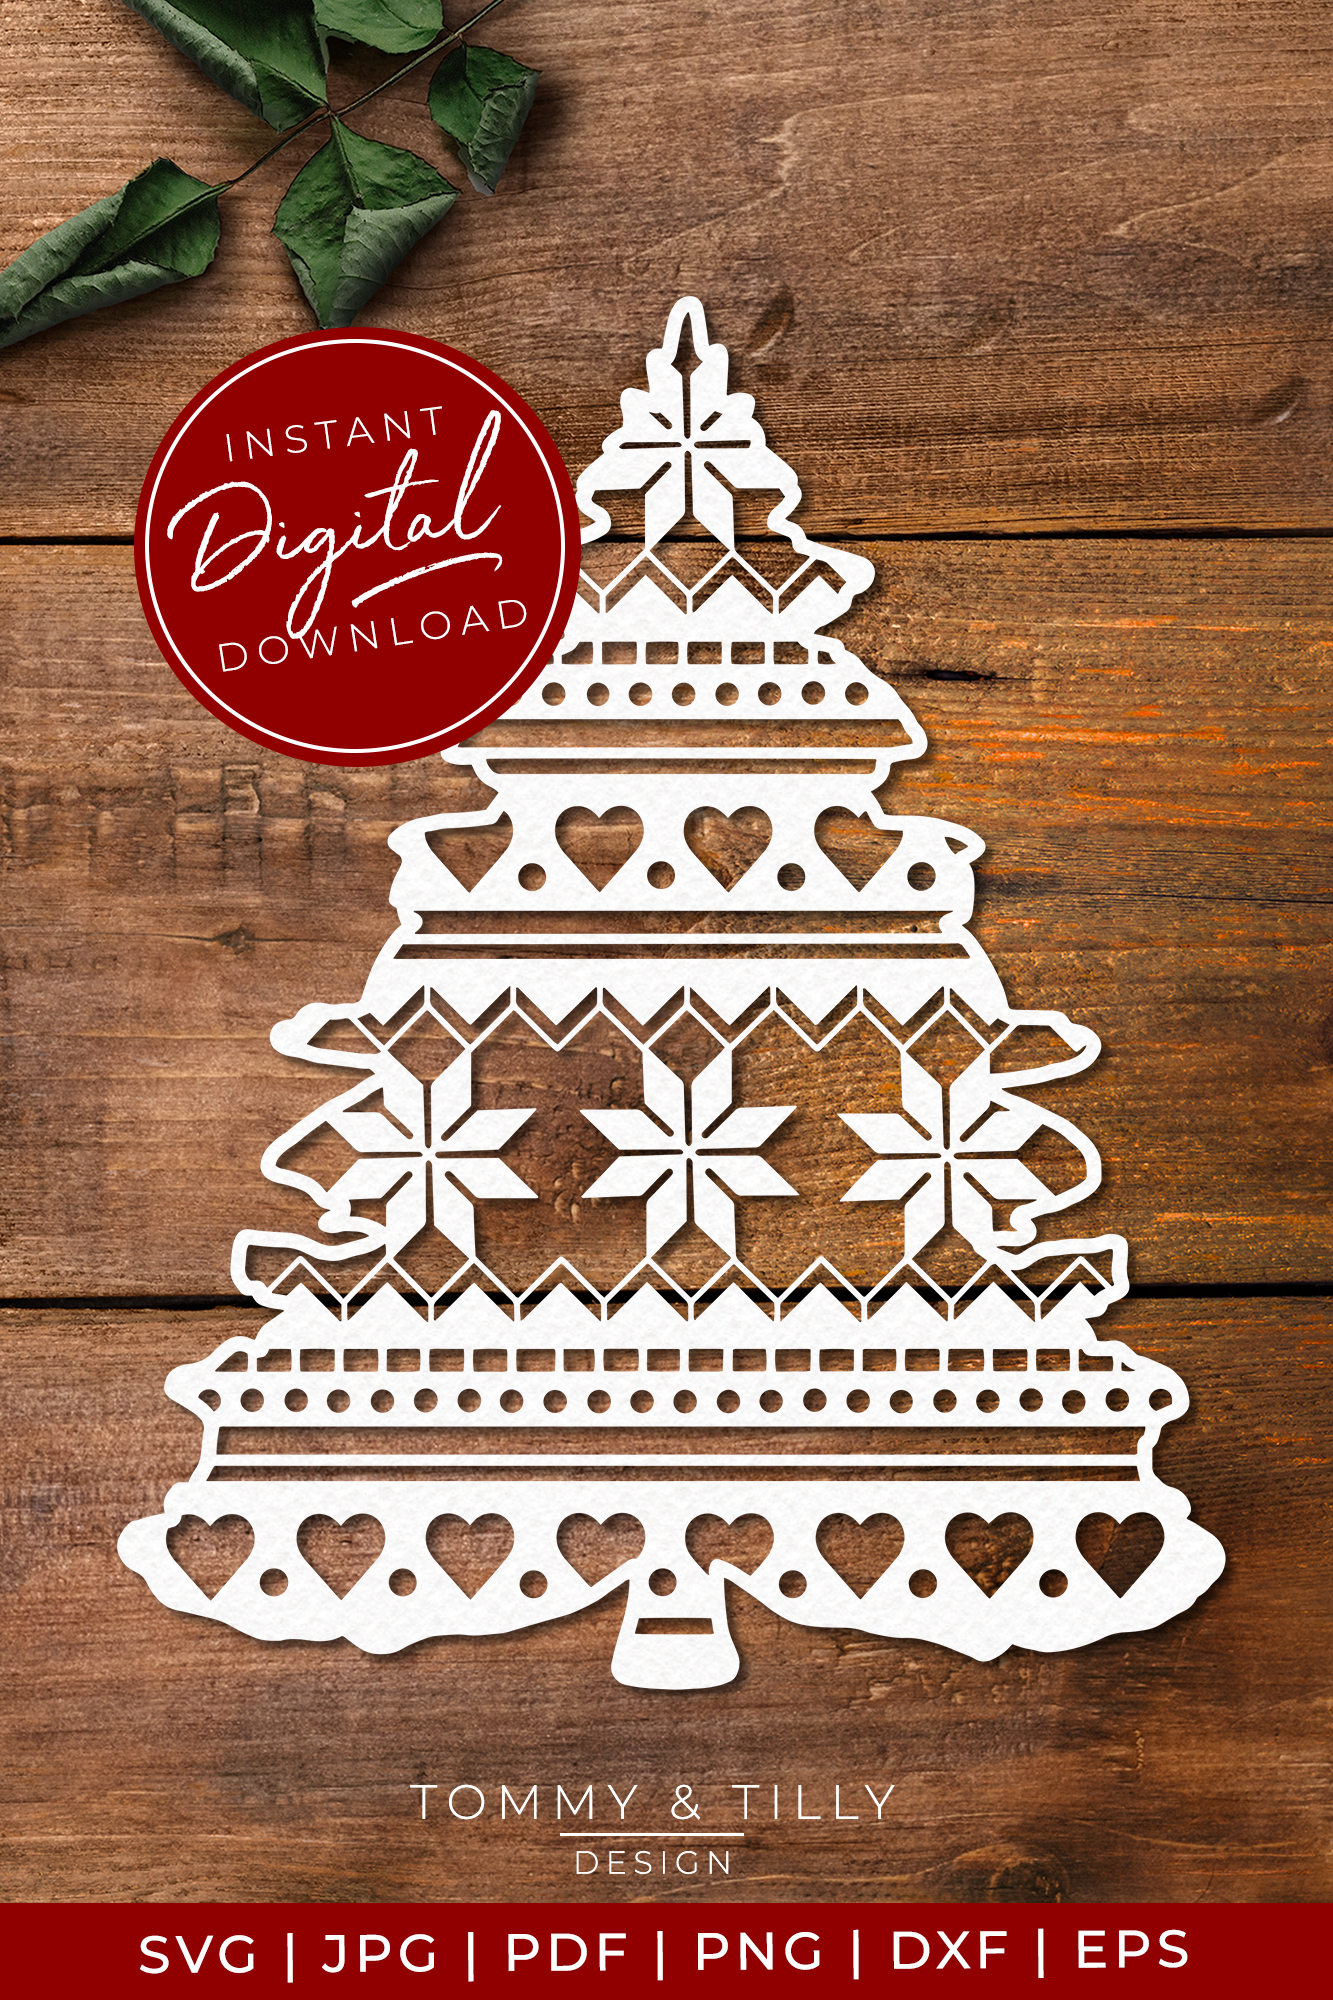 Pattern Christmas Tree - SVG EPS DXF PNG PDF JPG example image 4